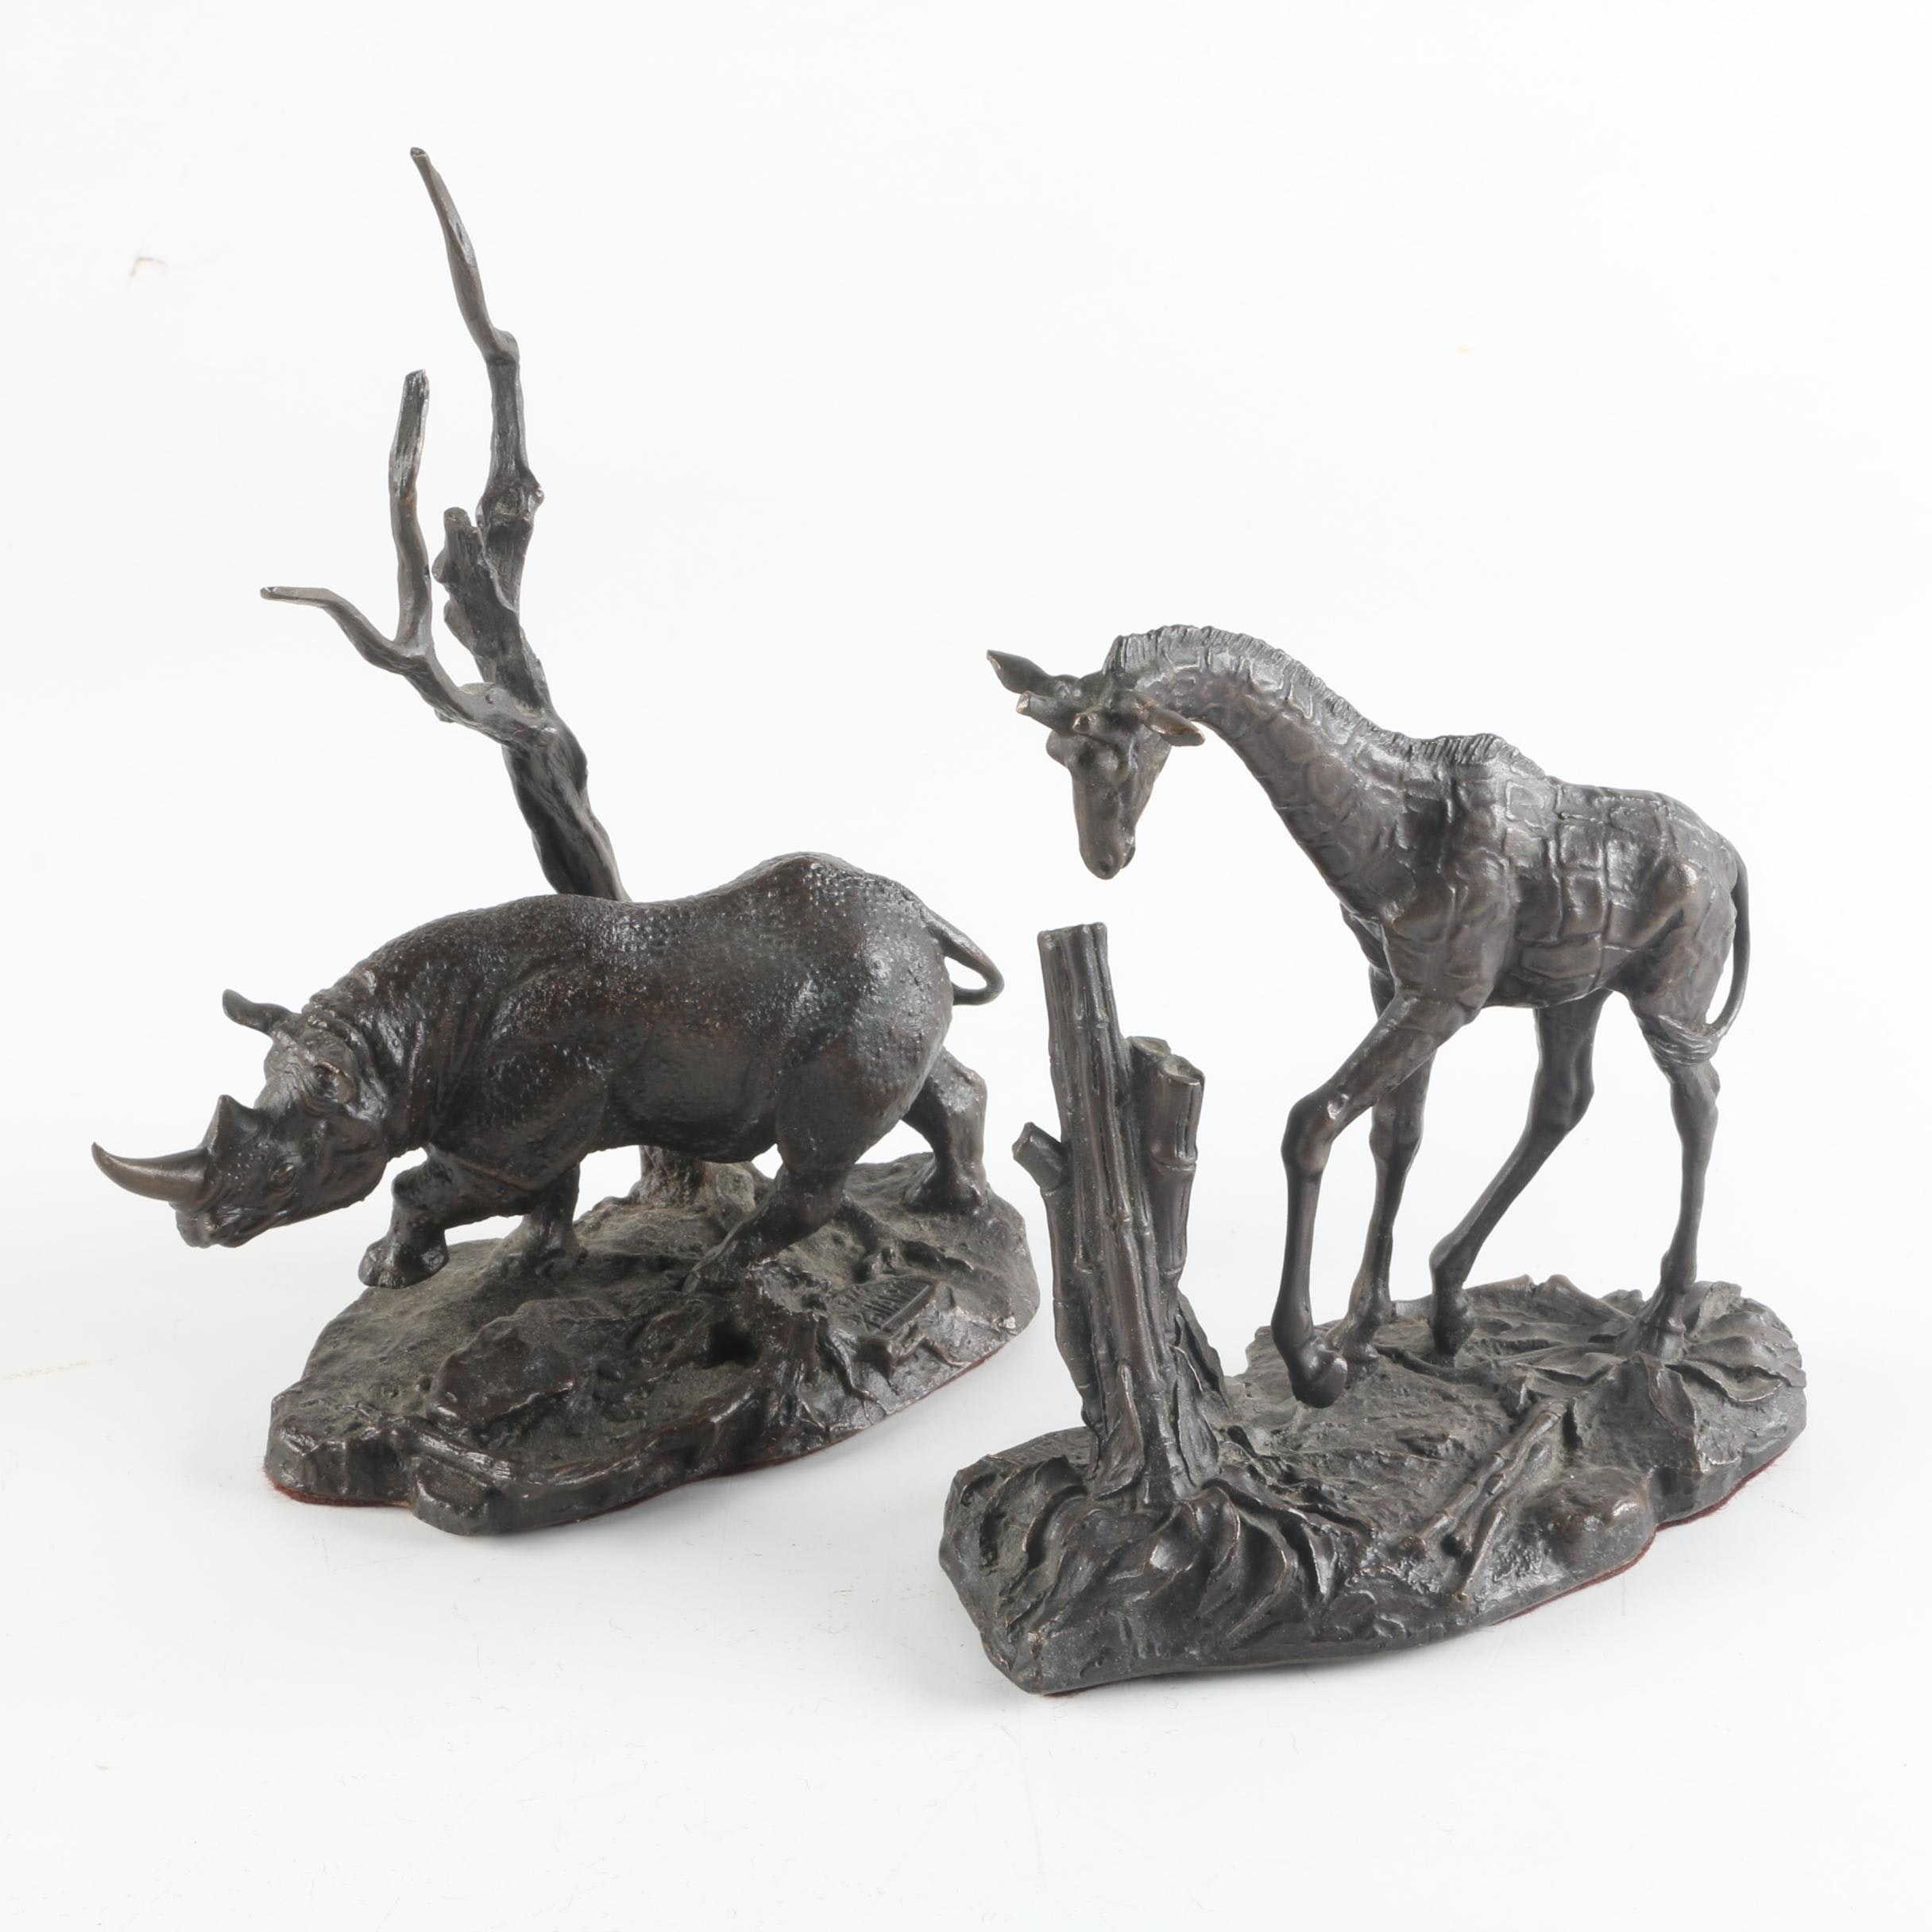 Franklin Mint Bronze Figurines of a Giraffe and Black Rhino